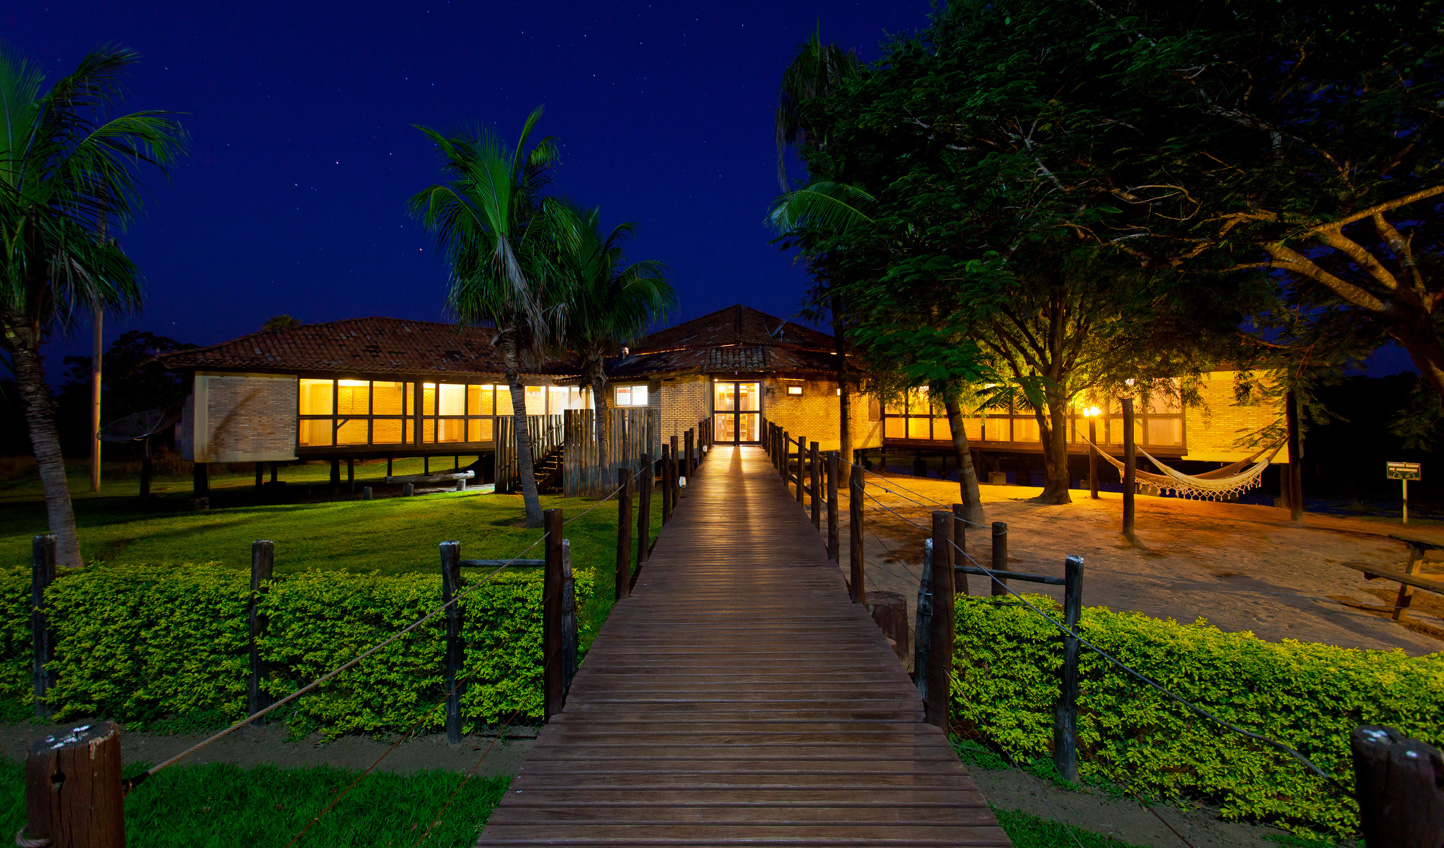 Escape to the wilds of Brazil at Caiman Ecological Refuge